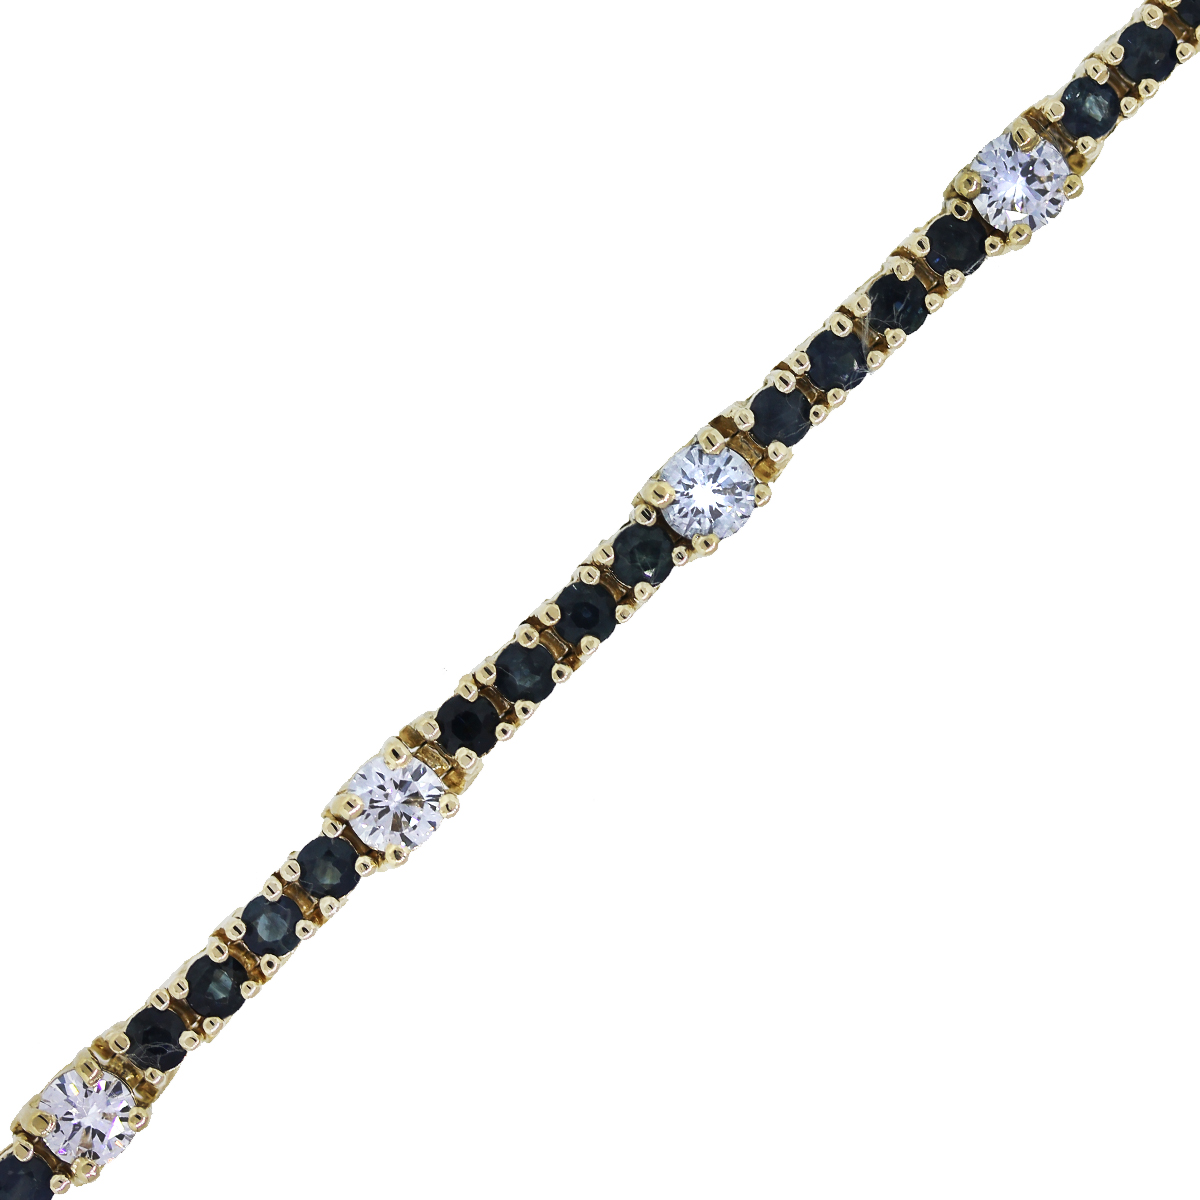 You are Viewing this Stunning Sapphire and Diamond Tennis Bracelet